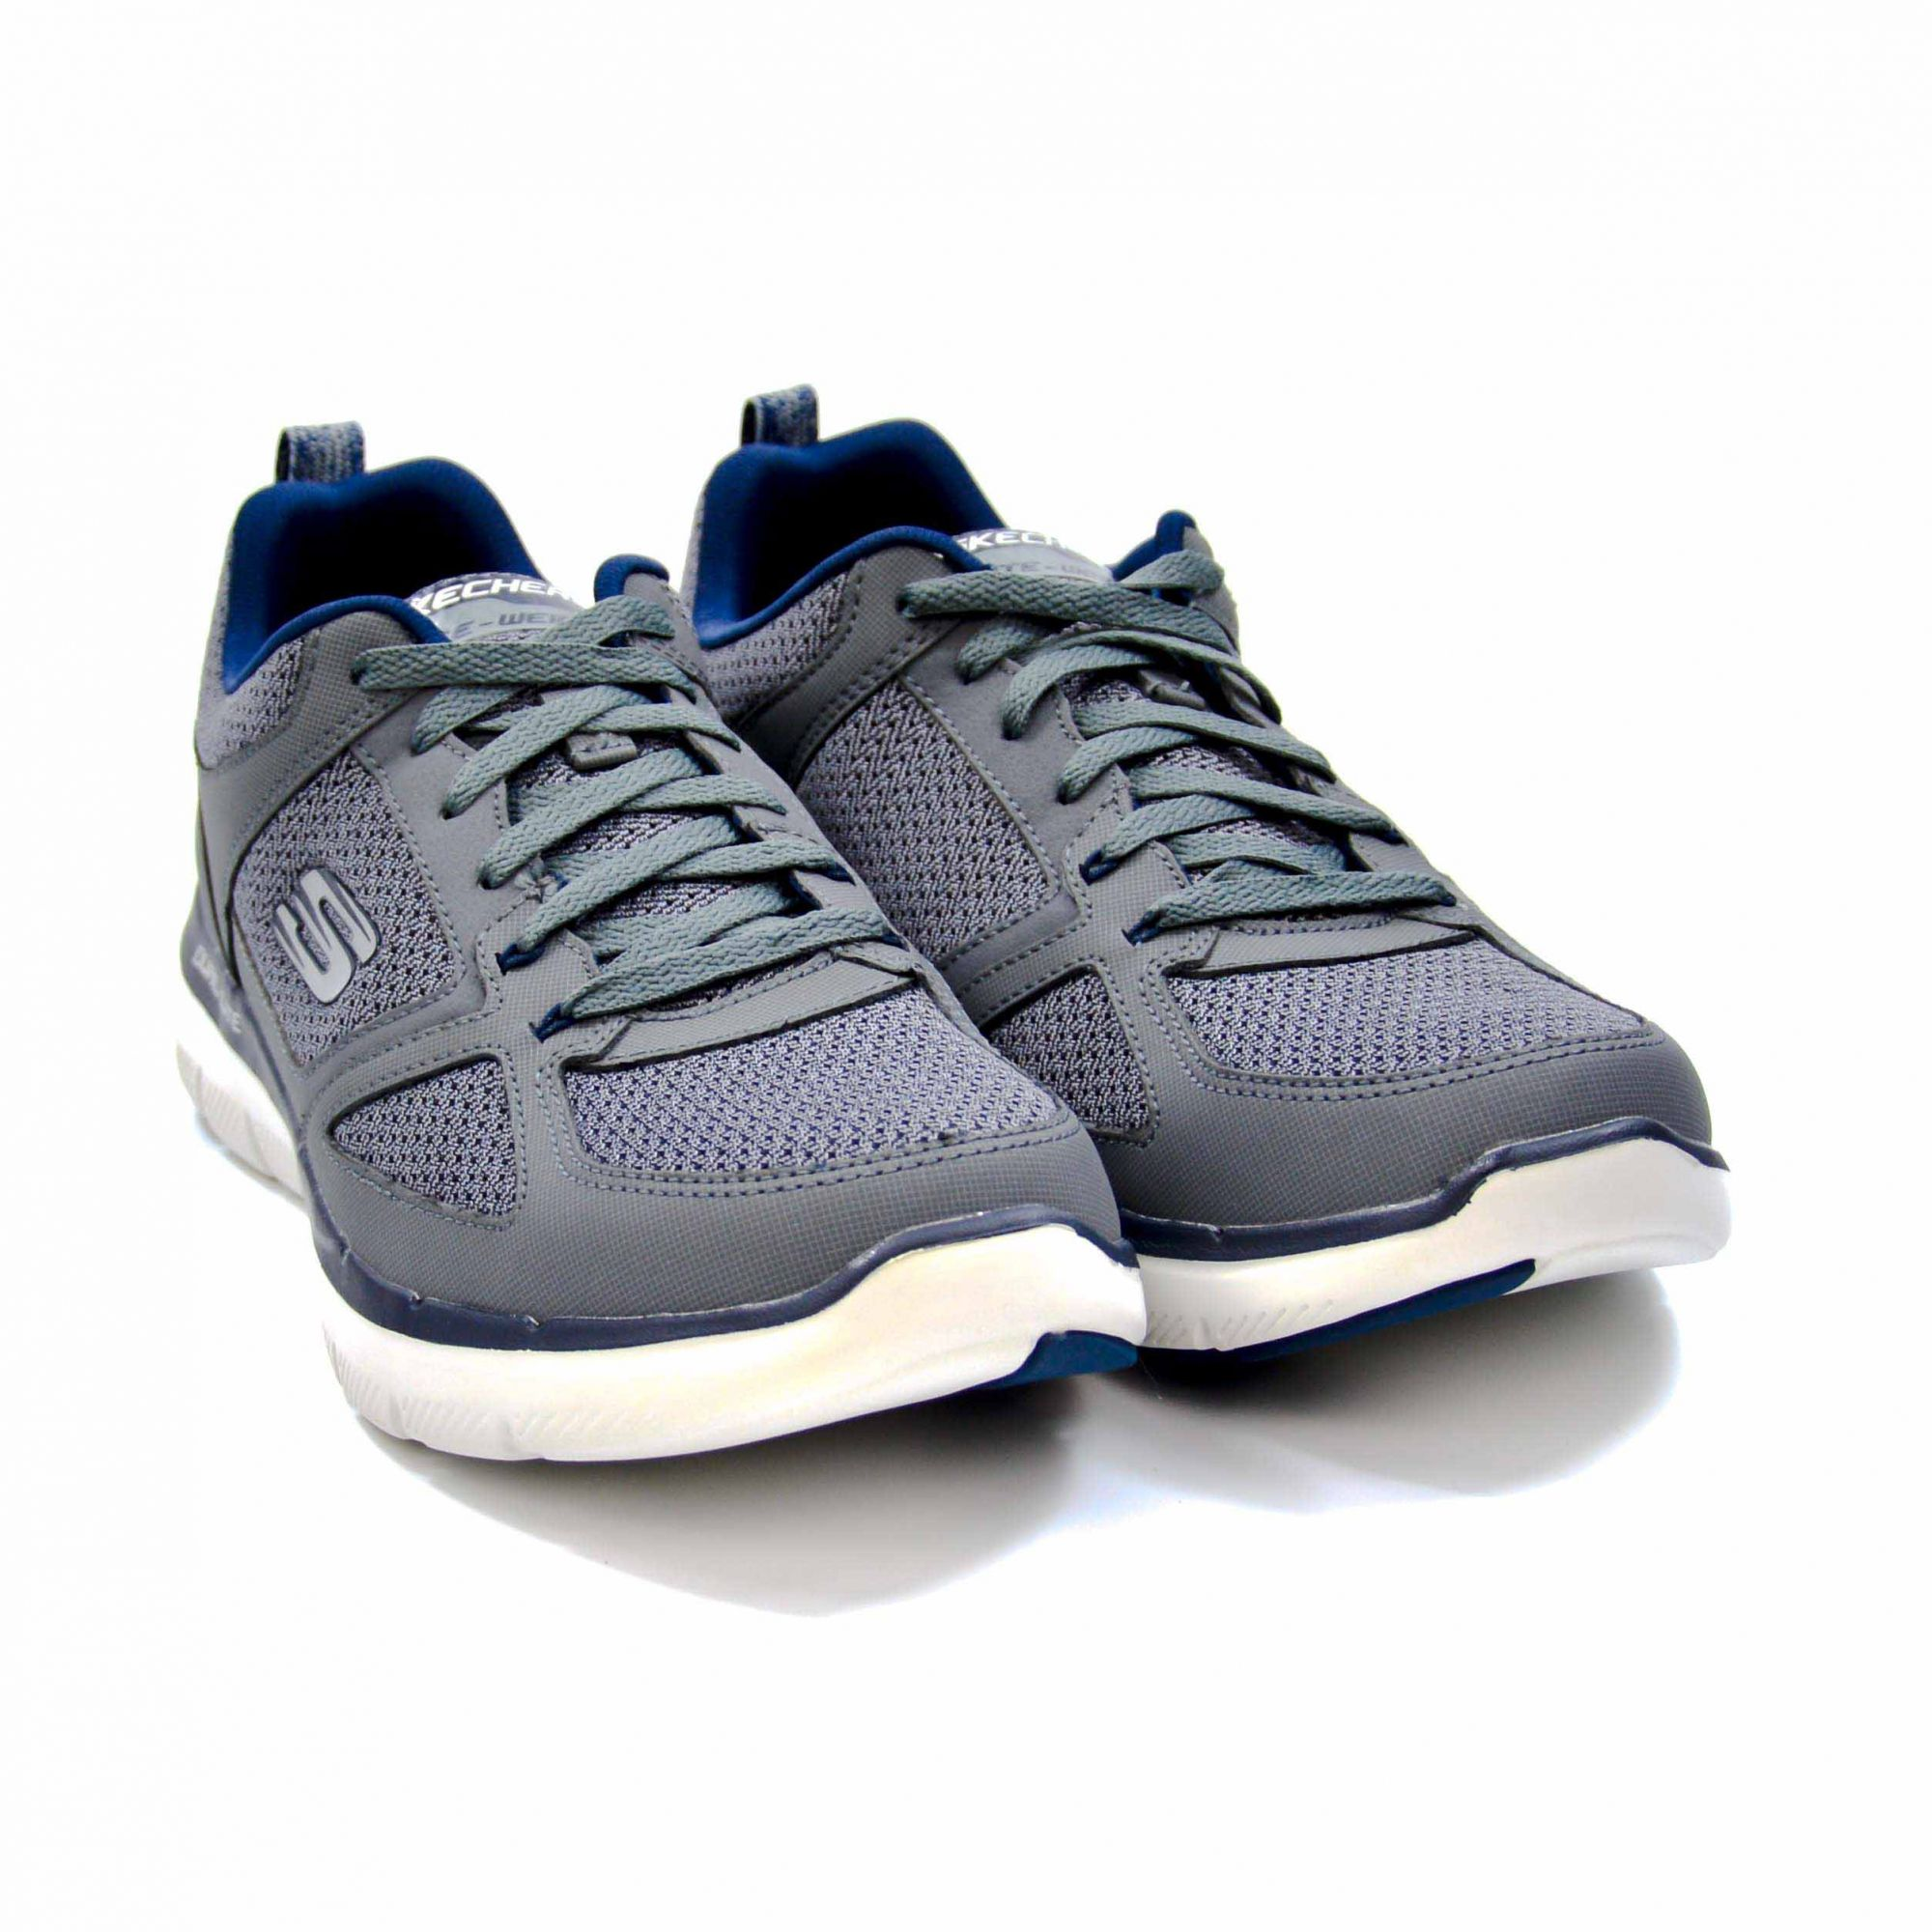 TÊNIS ESPORTIVO MASCULINO SKECHERS FLEX ADVANTAGE 2.0 CHARCOAL/BLUE - 017998